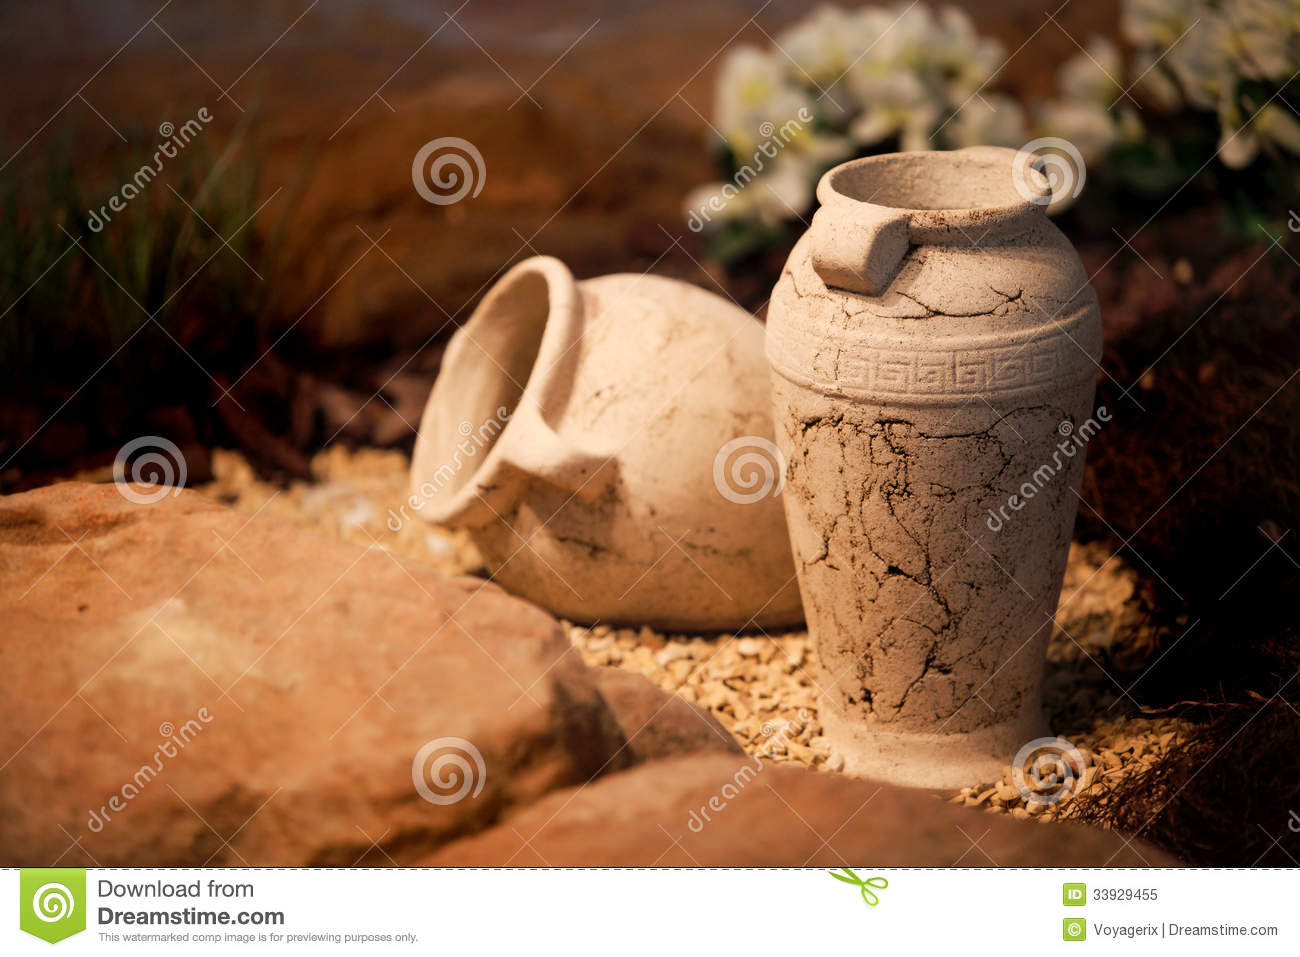 Decorative Jugs And Vases Ceramic Vases Clay Jugs Decoration And Craft Royalty Free Stock